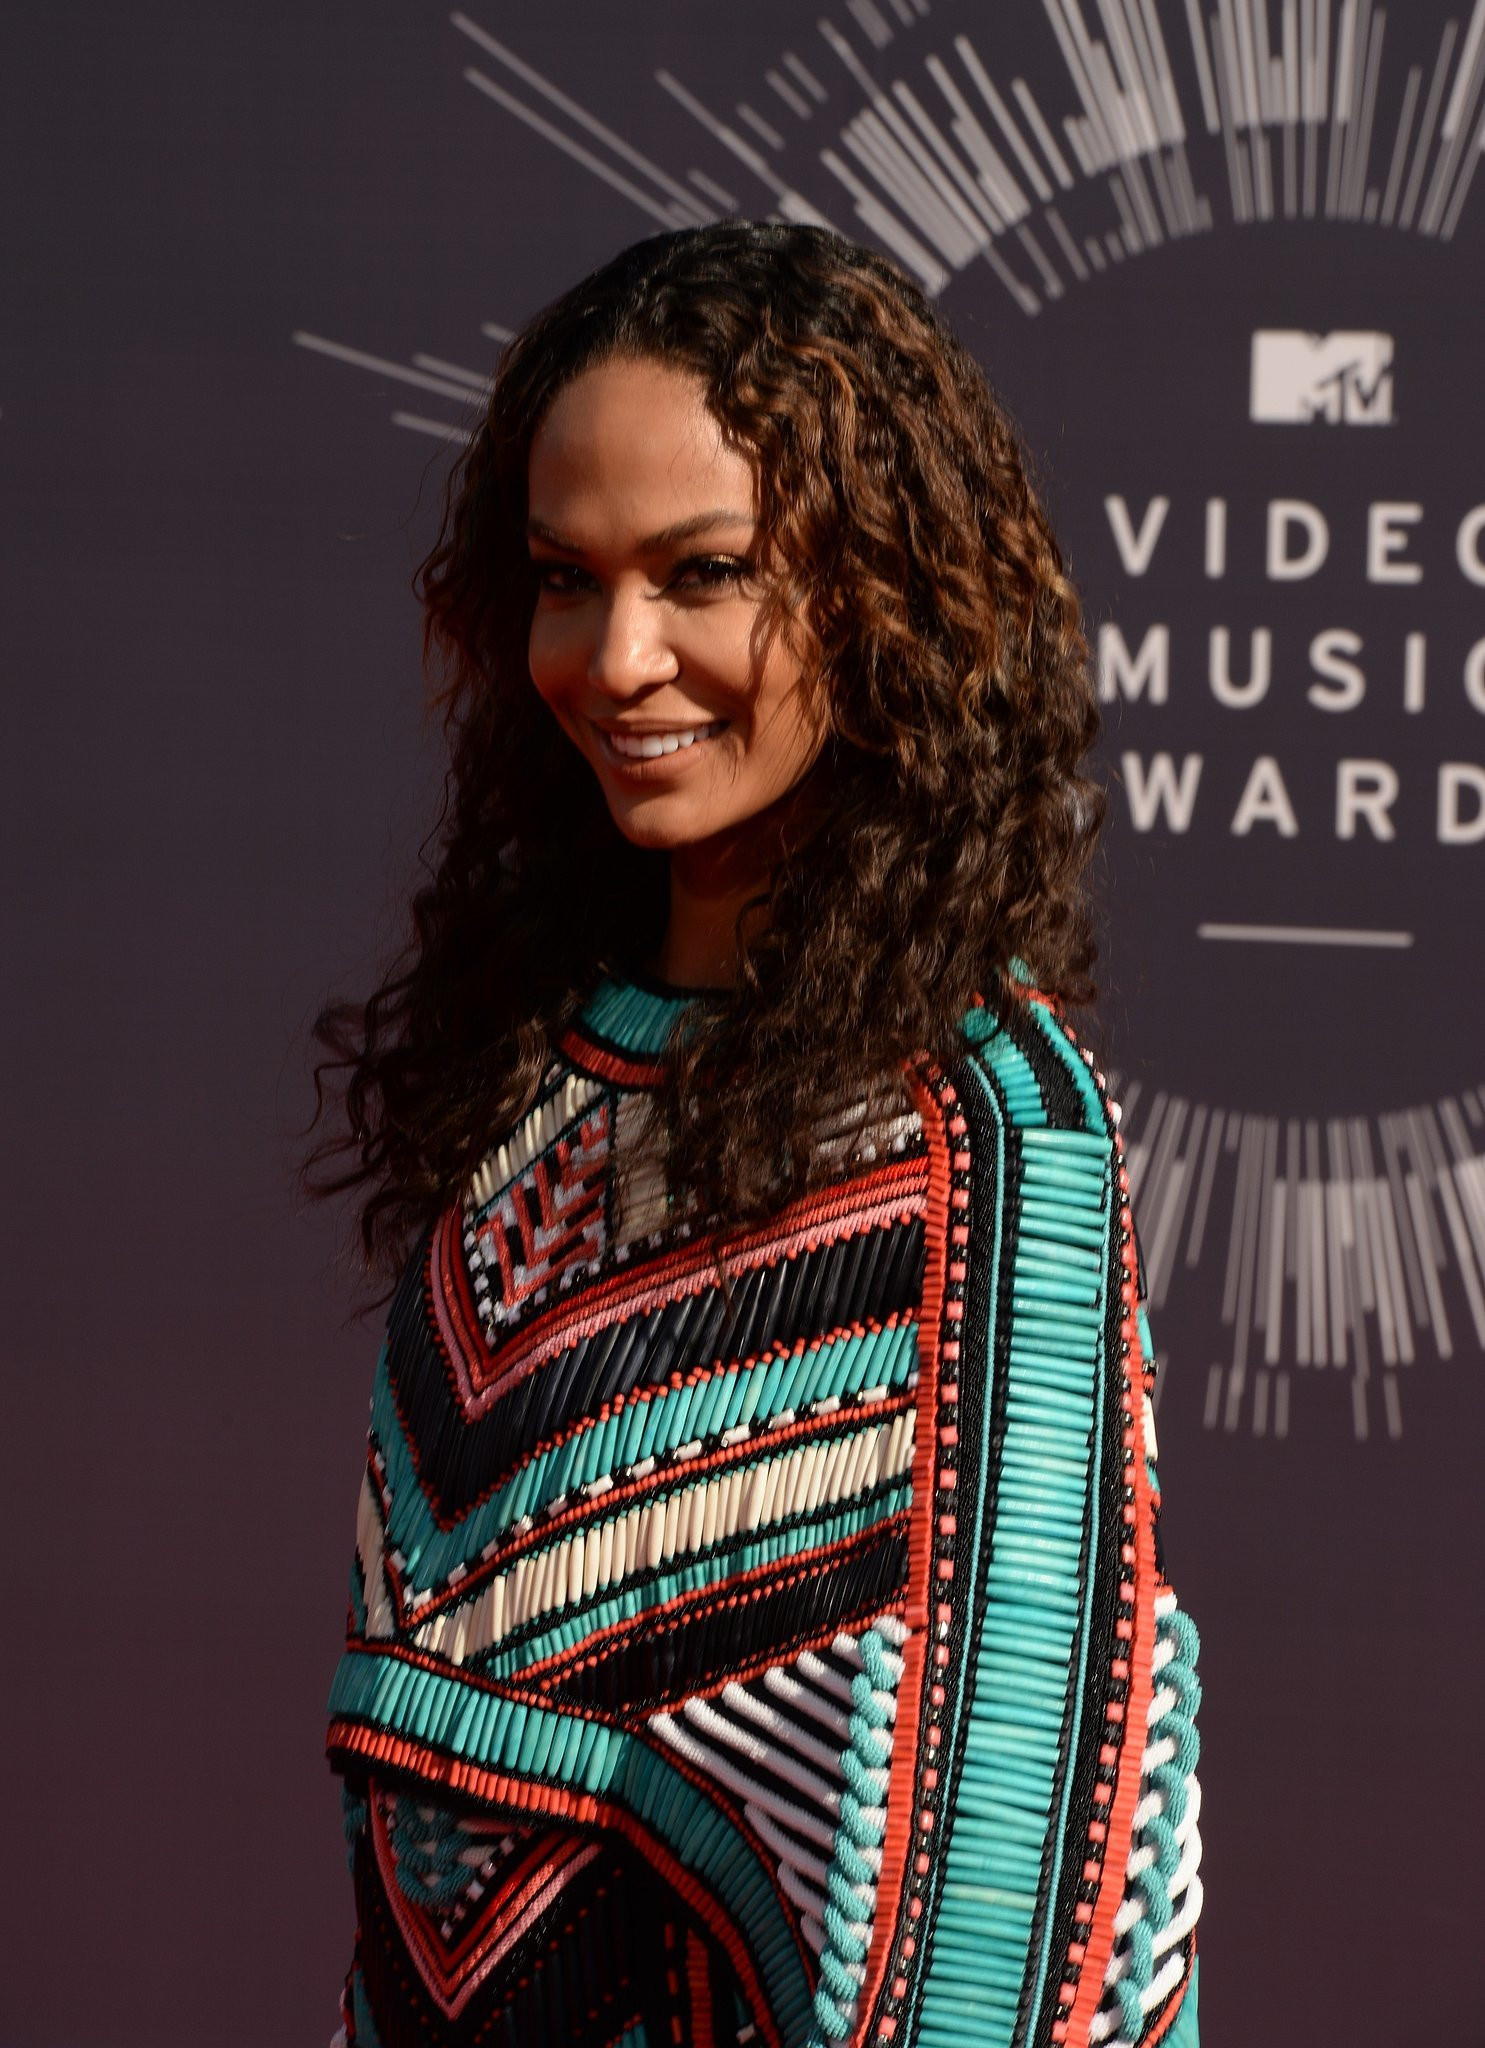 Party Foul! Kim Kardashian and Joan Smalls Wear Nearly Identical Dresses to the VMAs